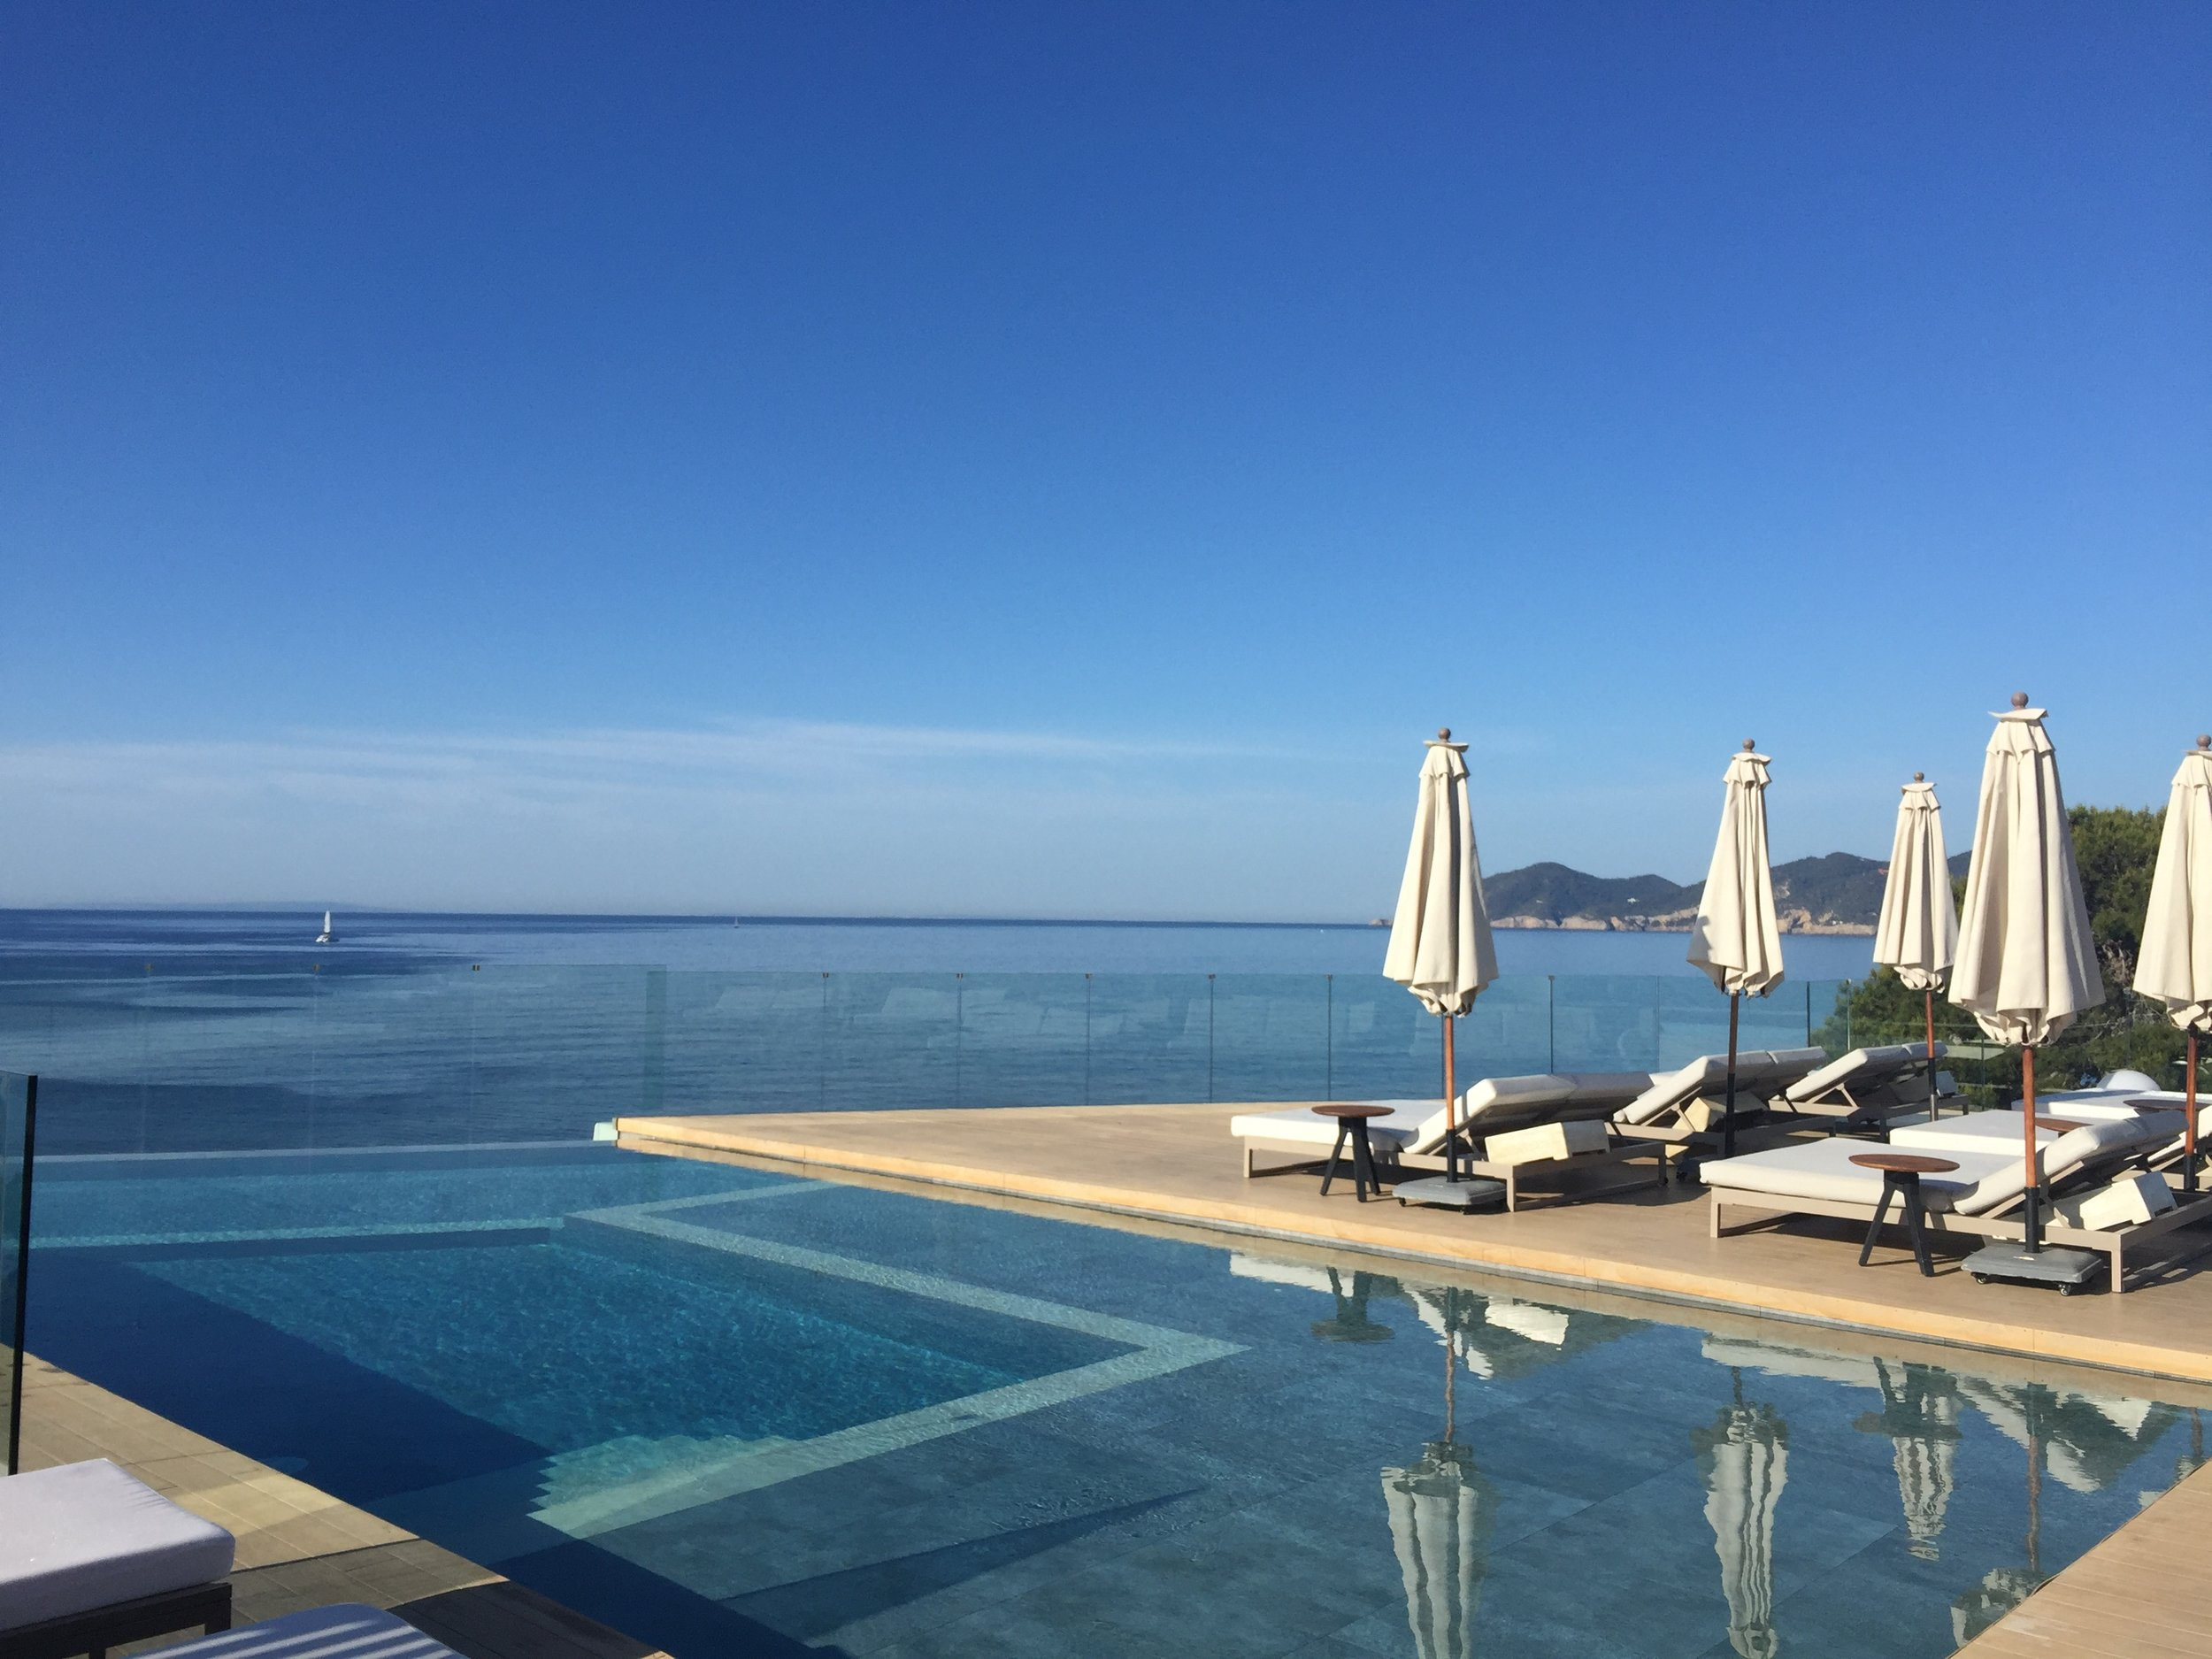 The ME rooftop pool